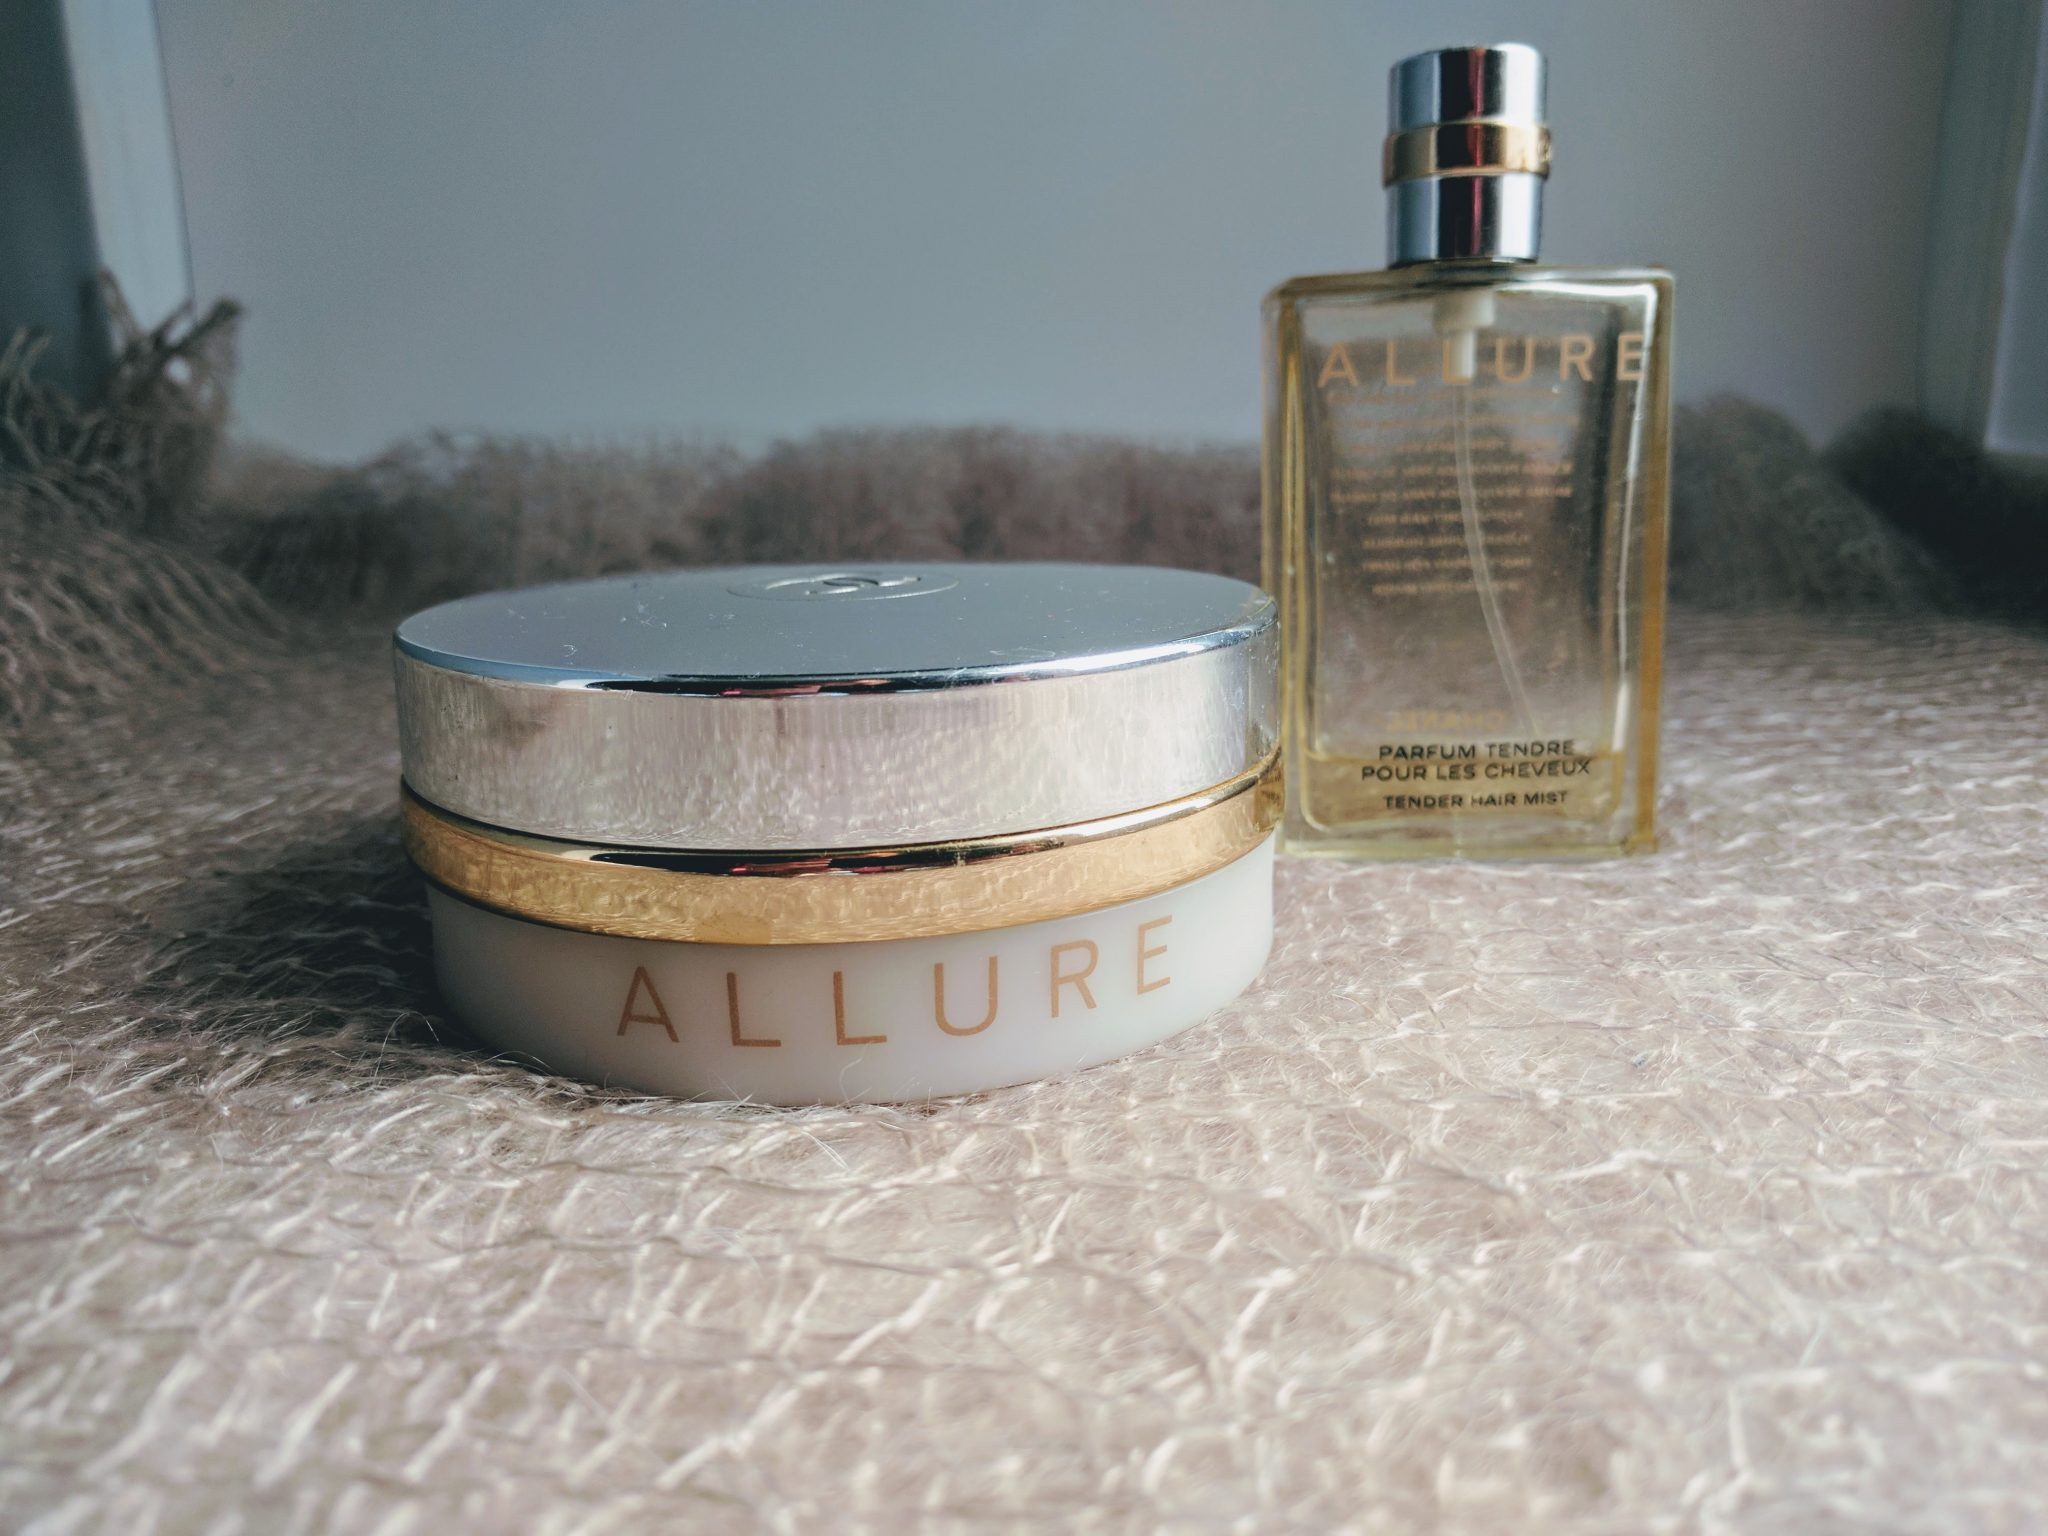 Луксузне пикантерије Chanel Allure Tender body powder and Chanel Allure Perfumed hair mist